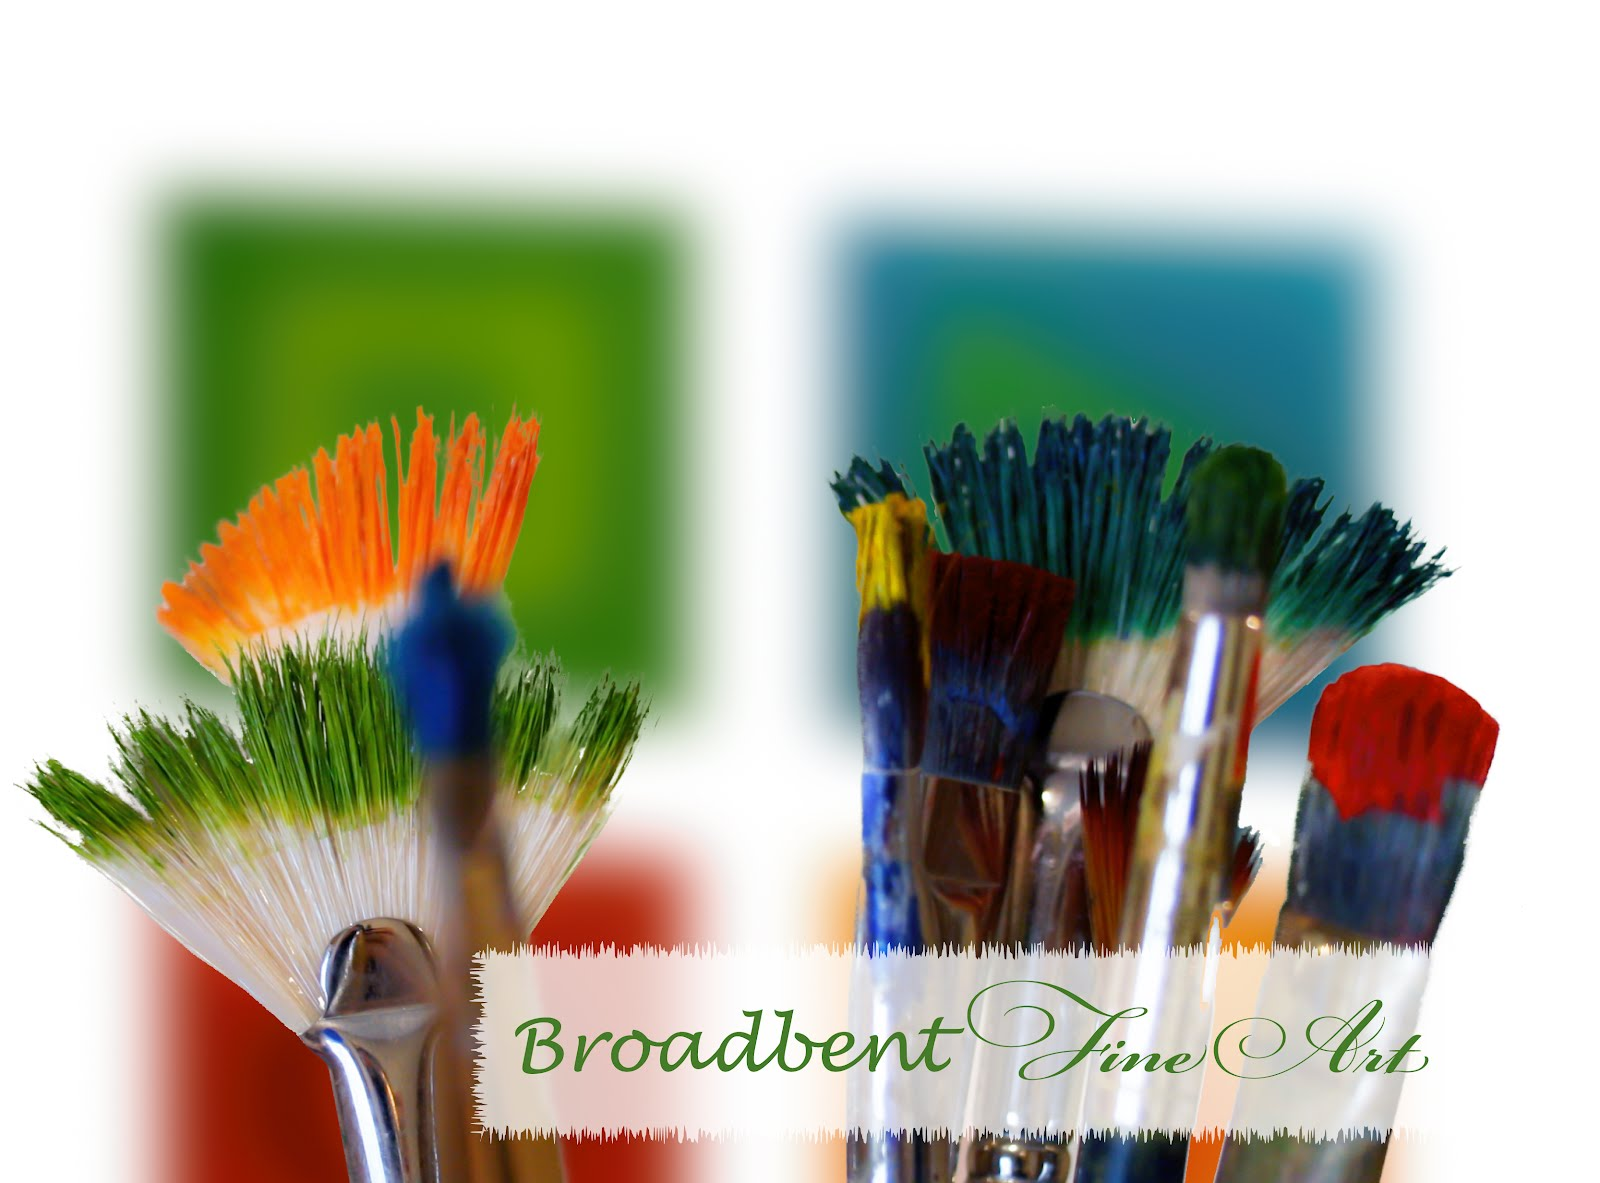 Broadbent Fine Art